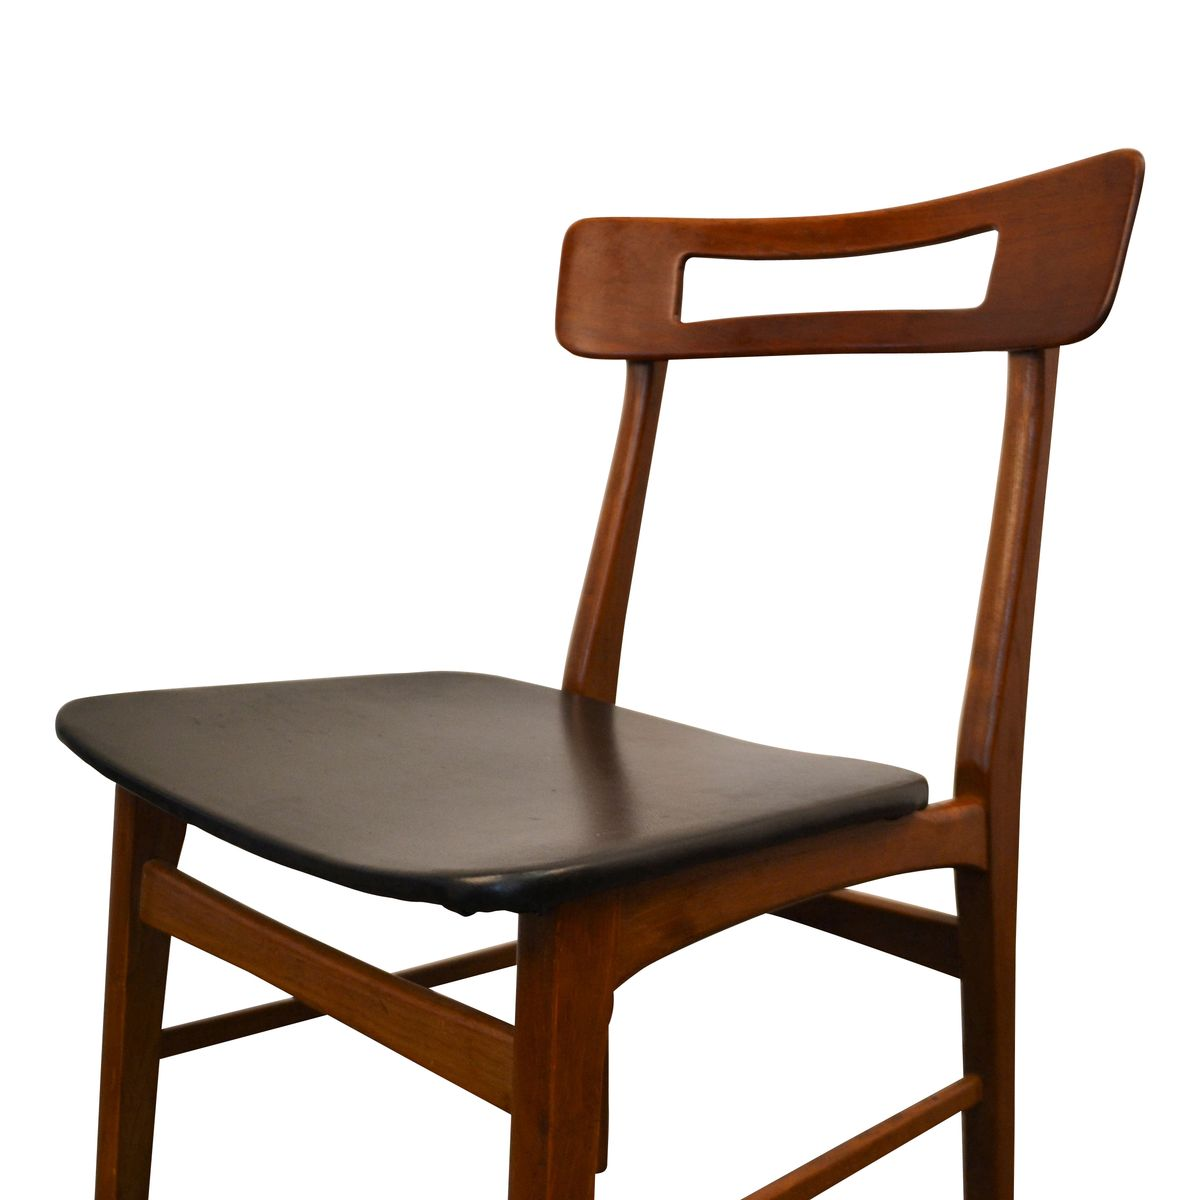 Danish Teak Dining Chairs 1950s Set of 6 for sale at Pamono : danish teak dining chairs 1950s set of 6 13 from www.pamono.com size 1200 x 1200 jpeg 55kB